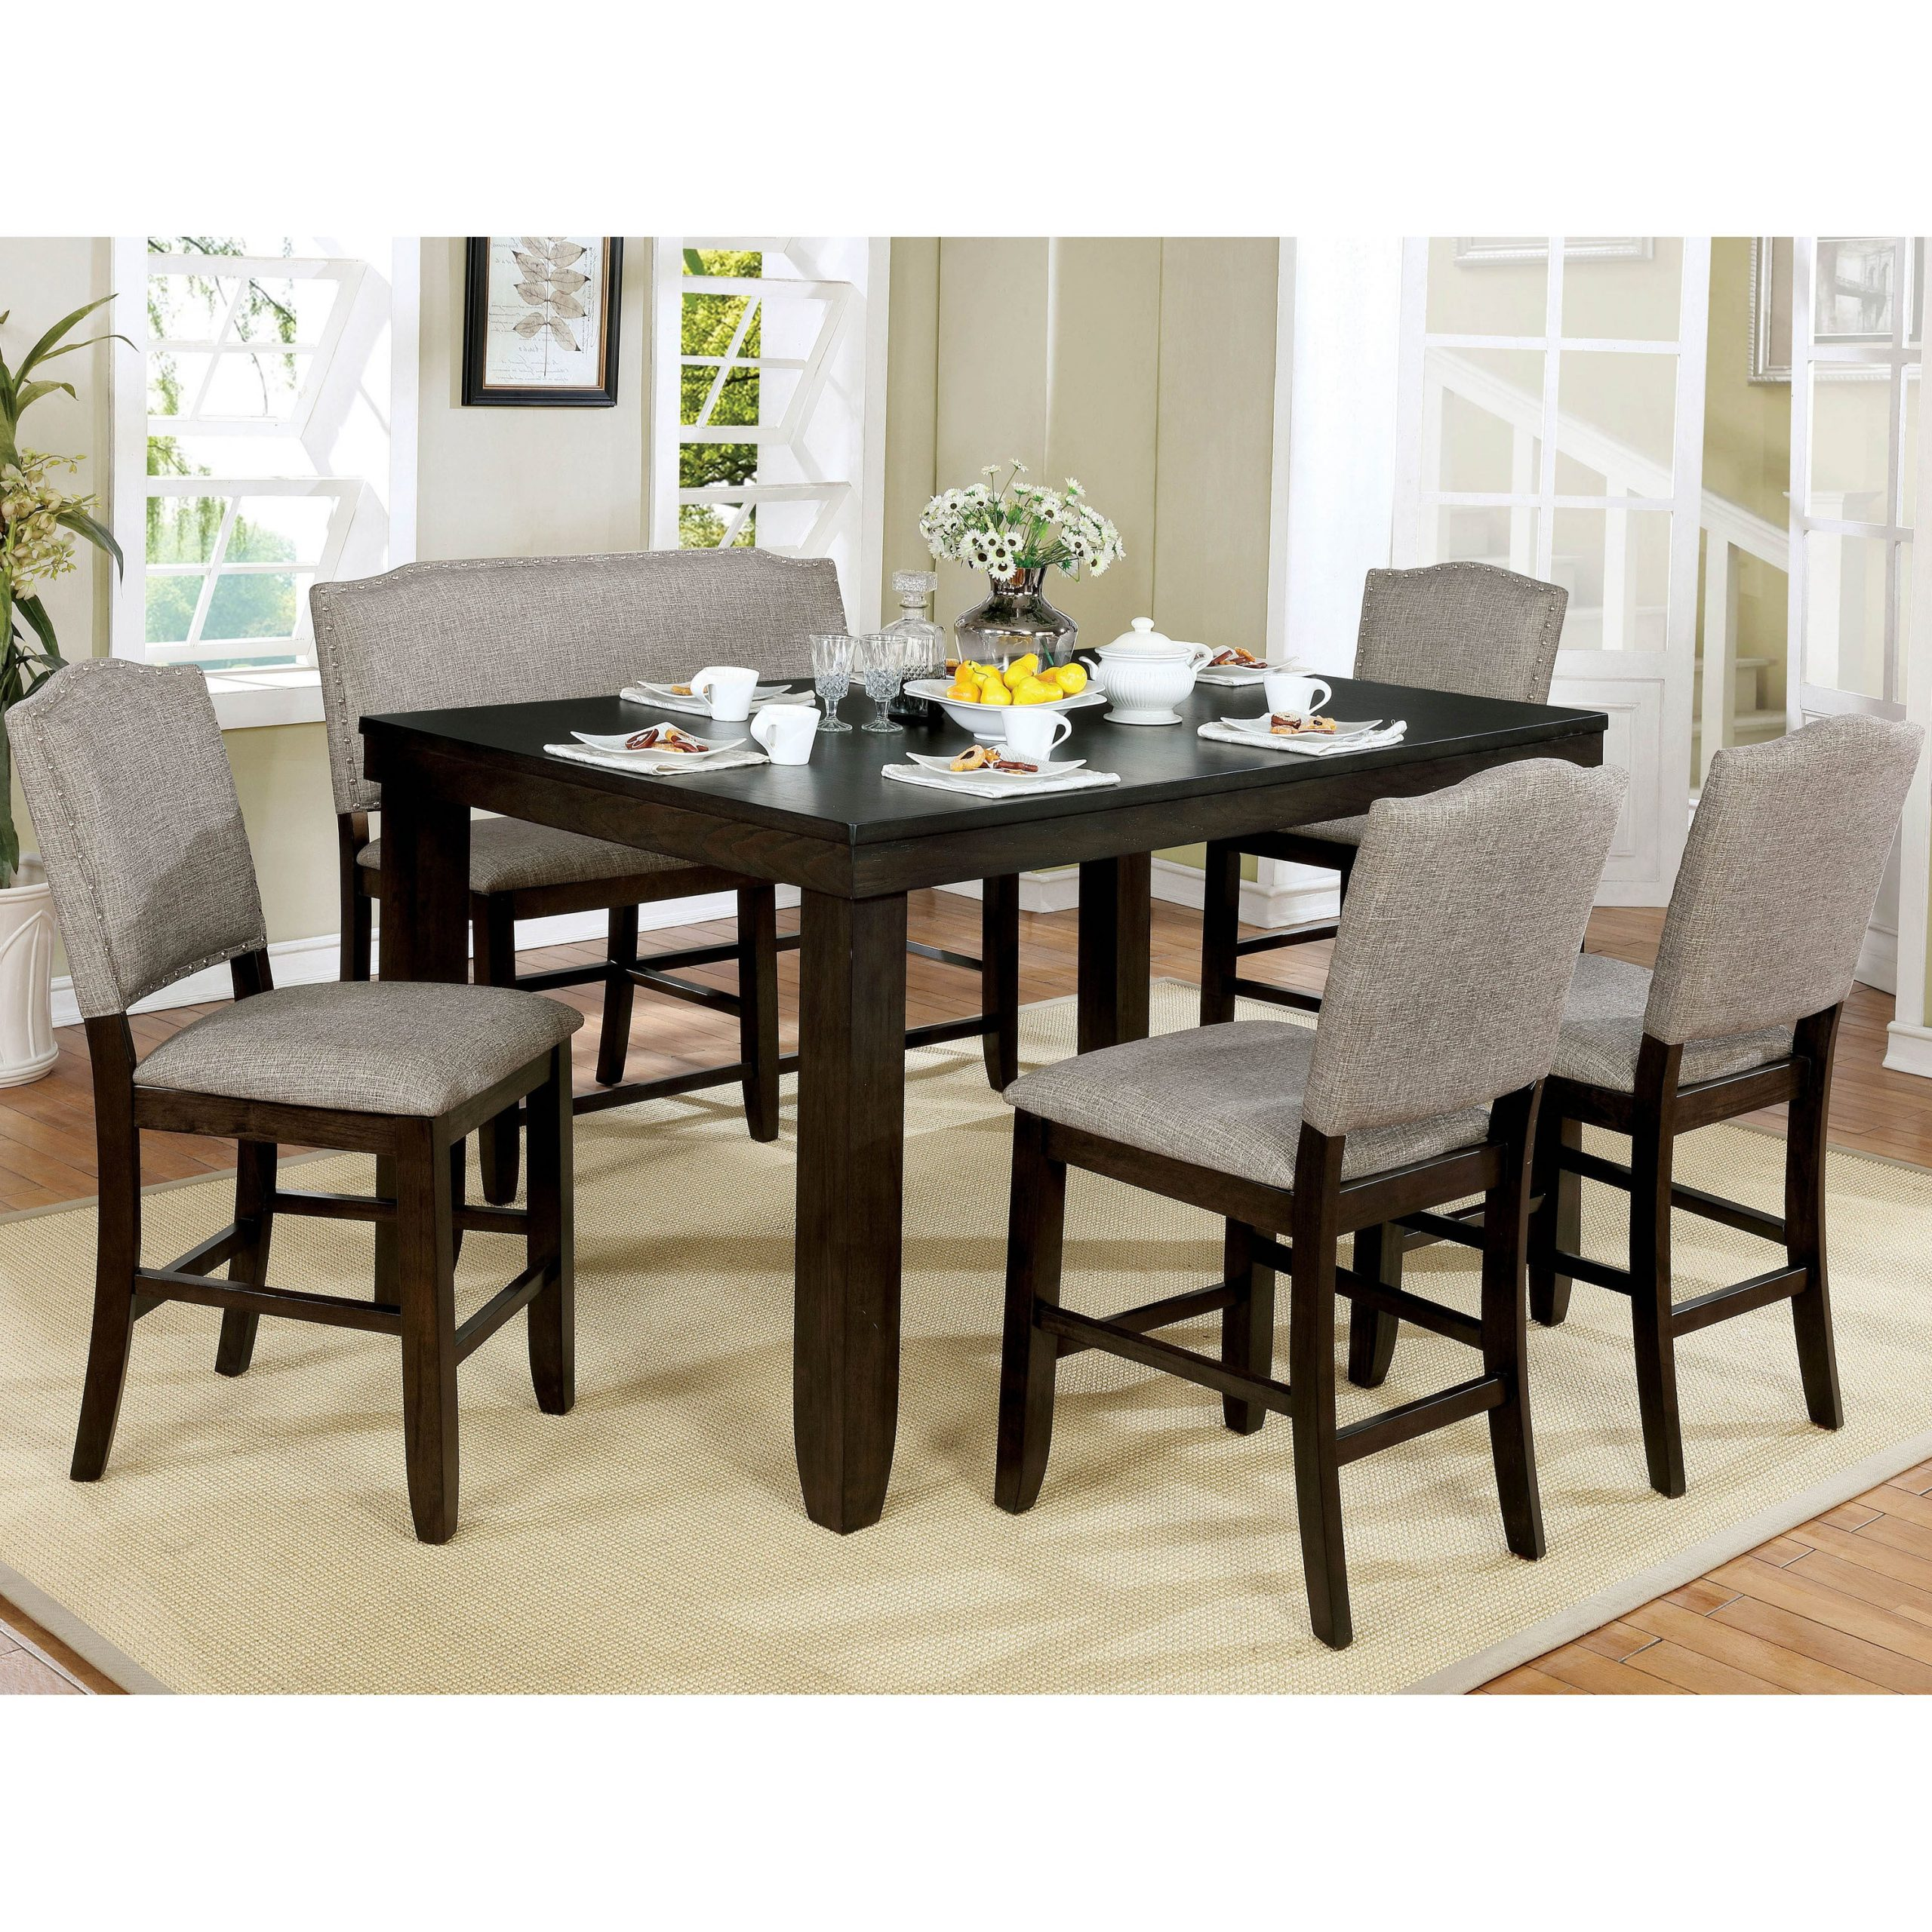 Newest Furniture Of America Davenport Walnut 6 Piece Counter Dining Set Inside Transitional 6 Seating Casual Dining Tables (View 10 of 30)